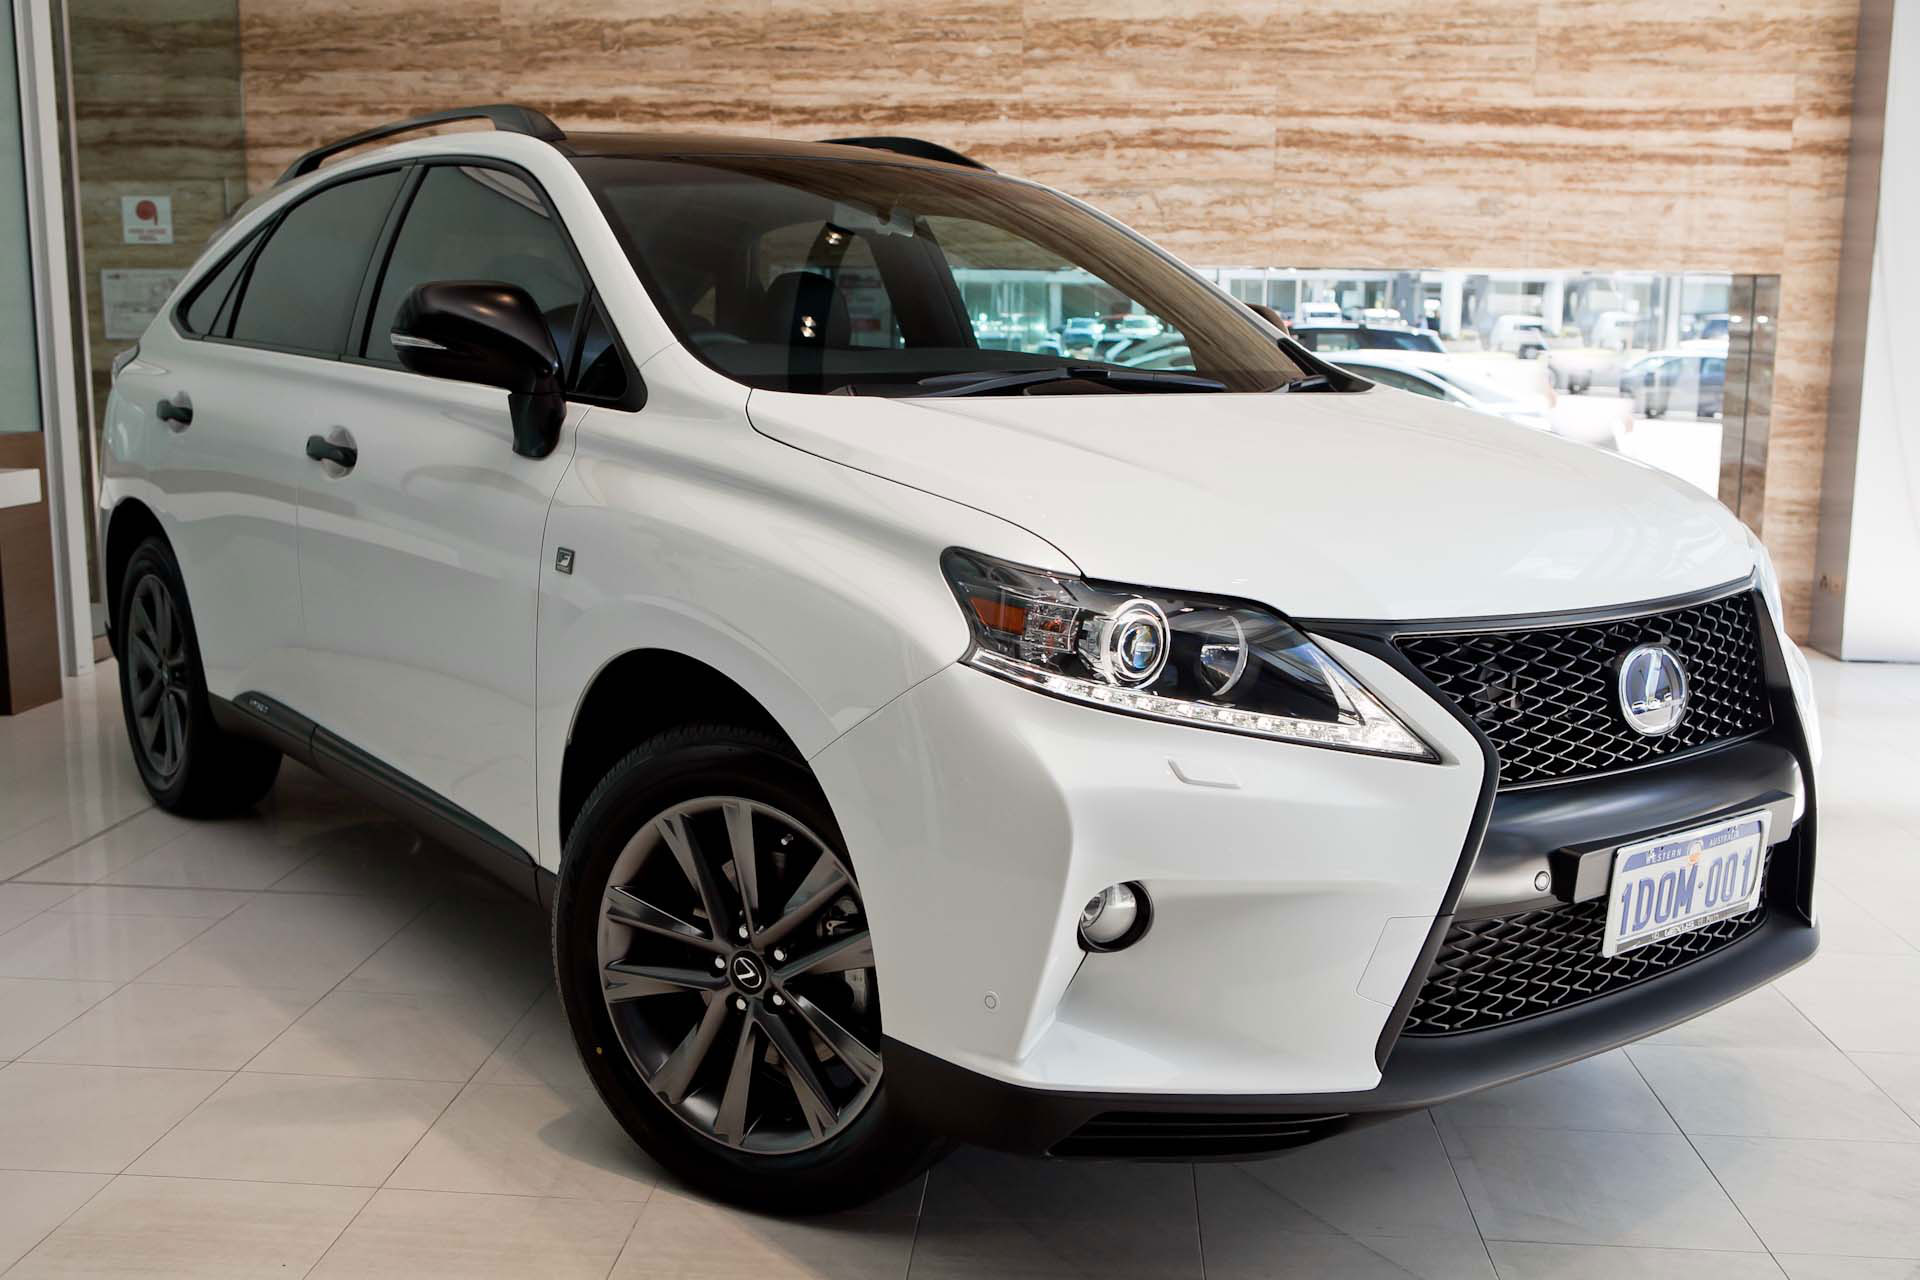 Photo Gallery: Blacked Out Lexus RX 450h F SPORT